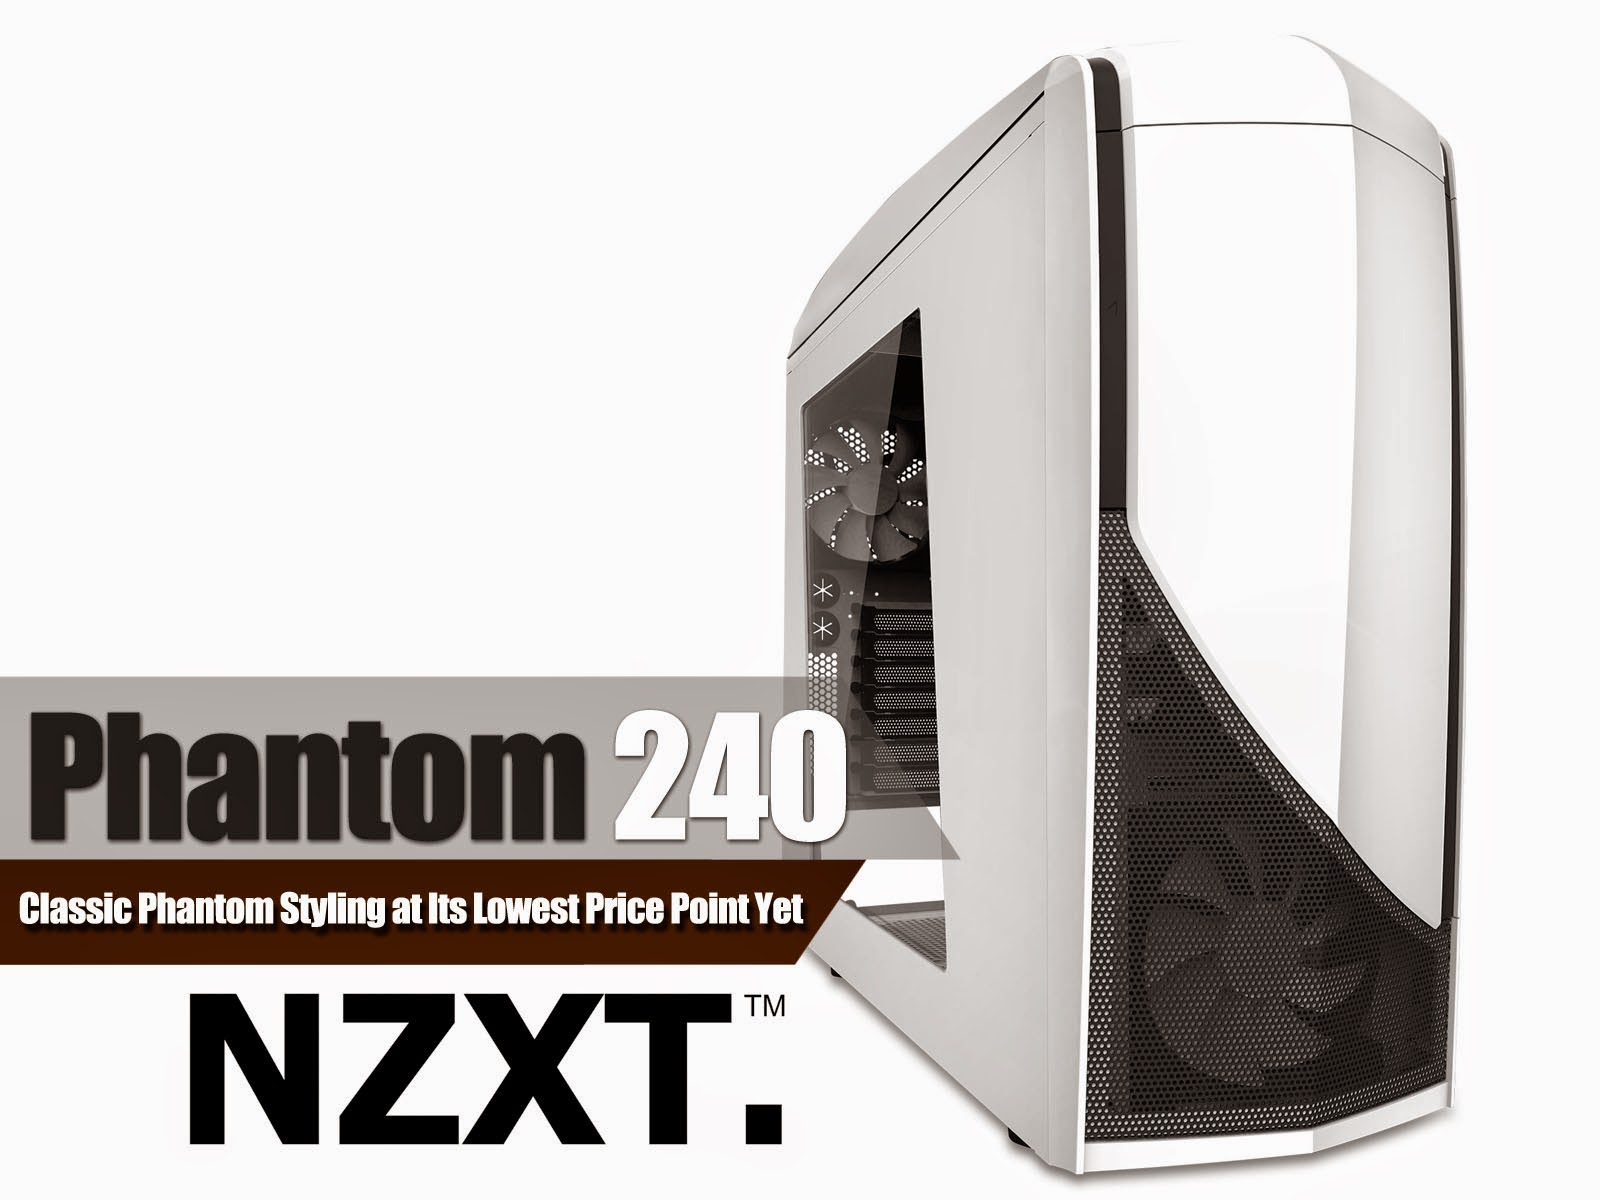 NZXT Announces Release of the Phantom 240 Mid-Tower Chassis 9